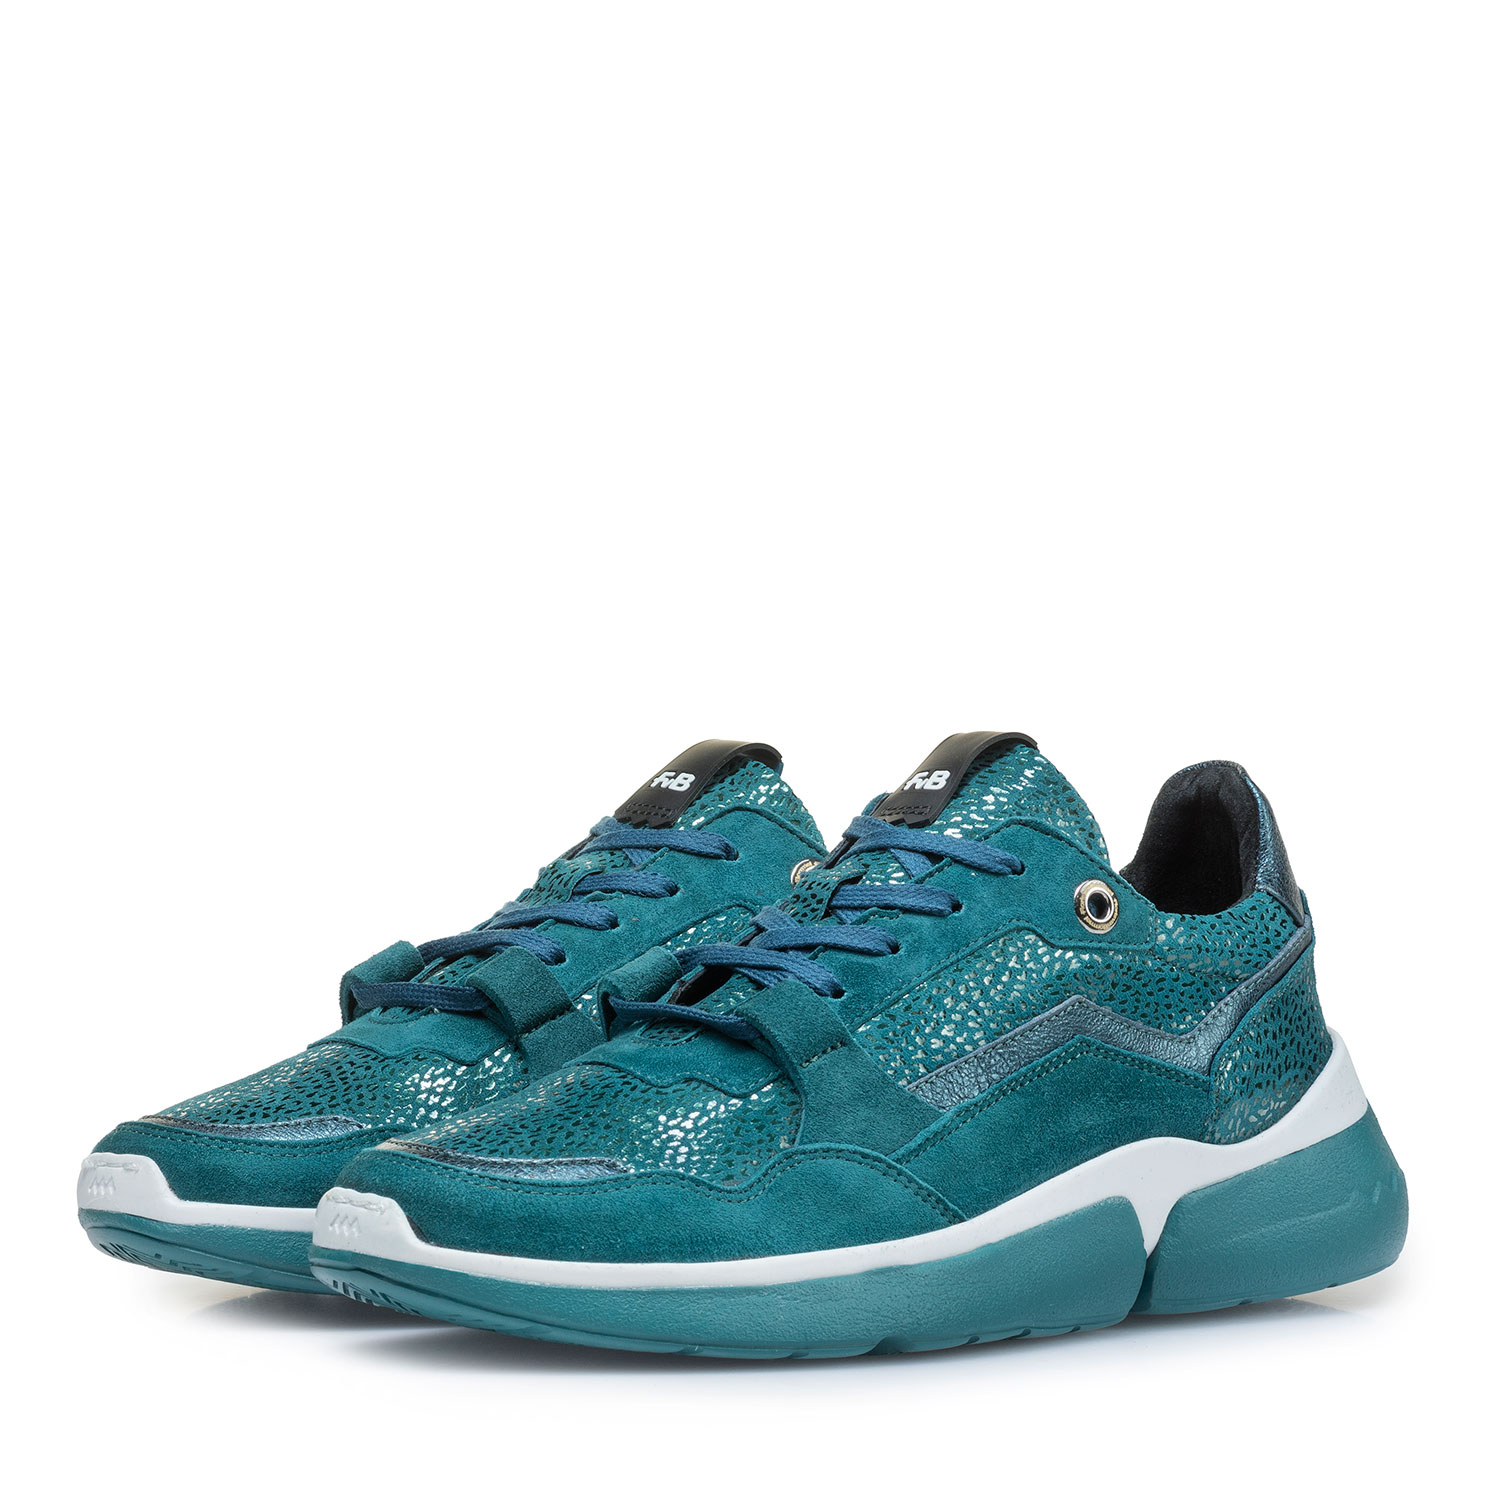 85291/11 - Blue suede leather sneaker with metallic print